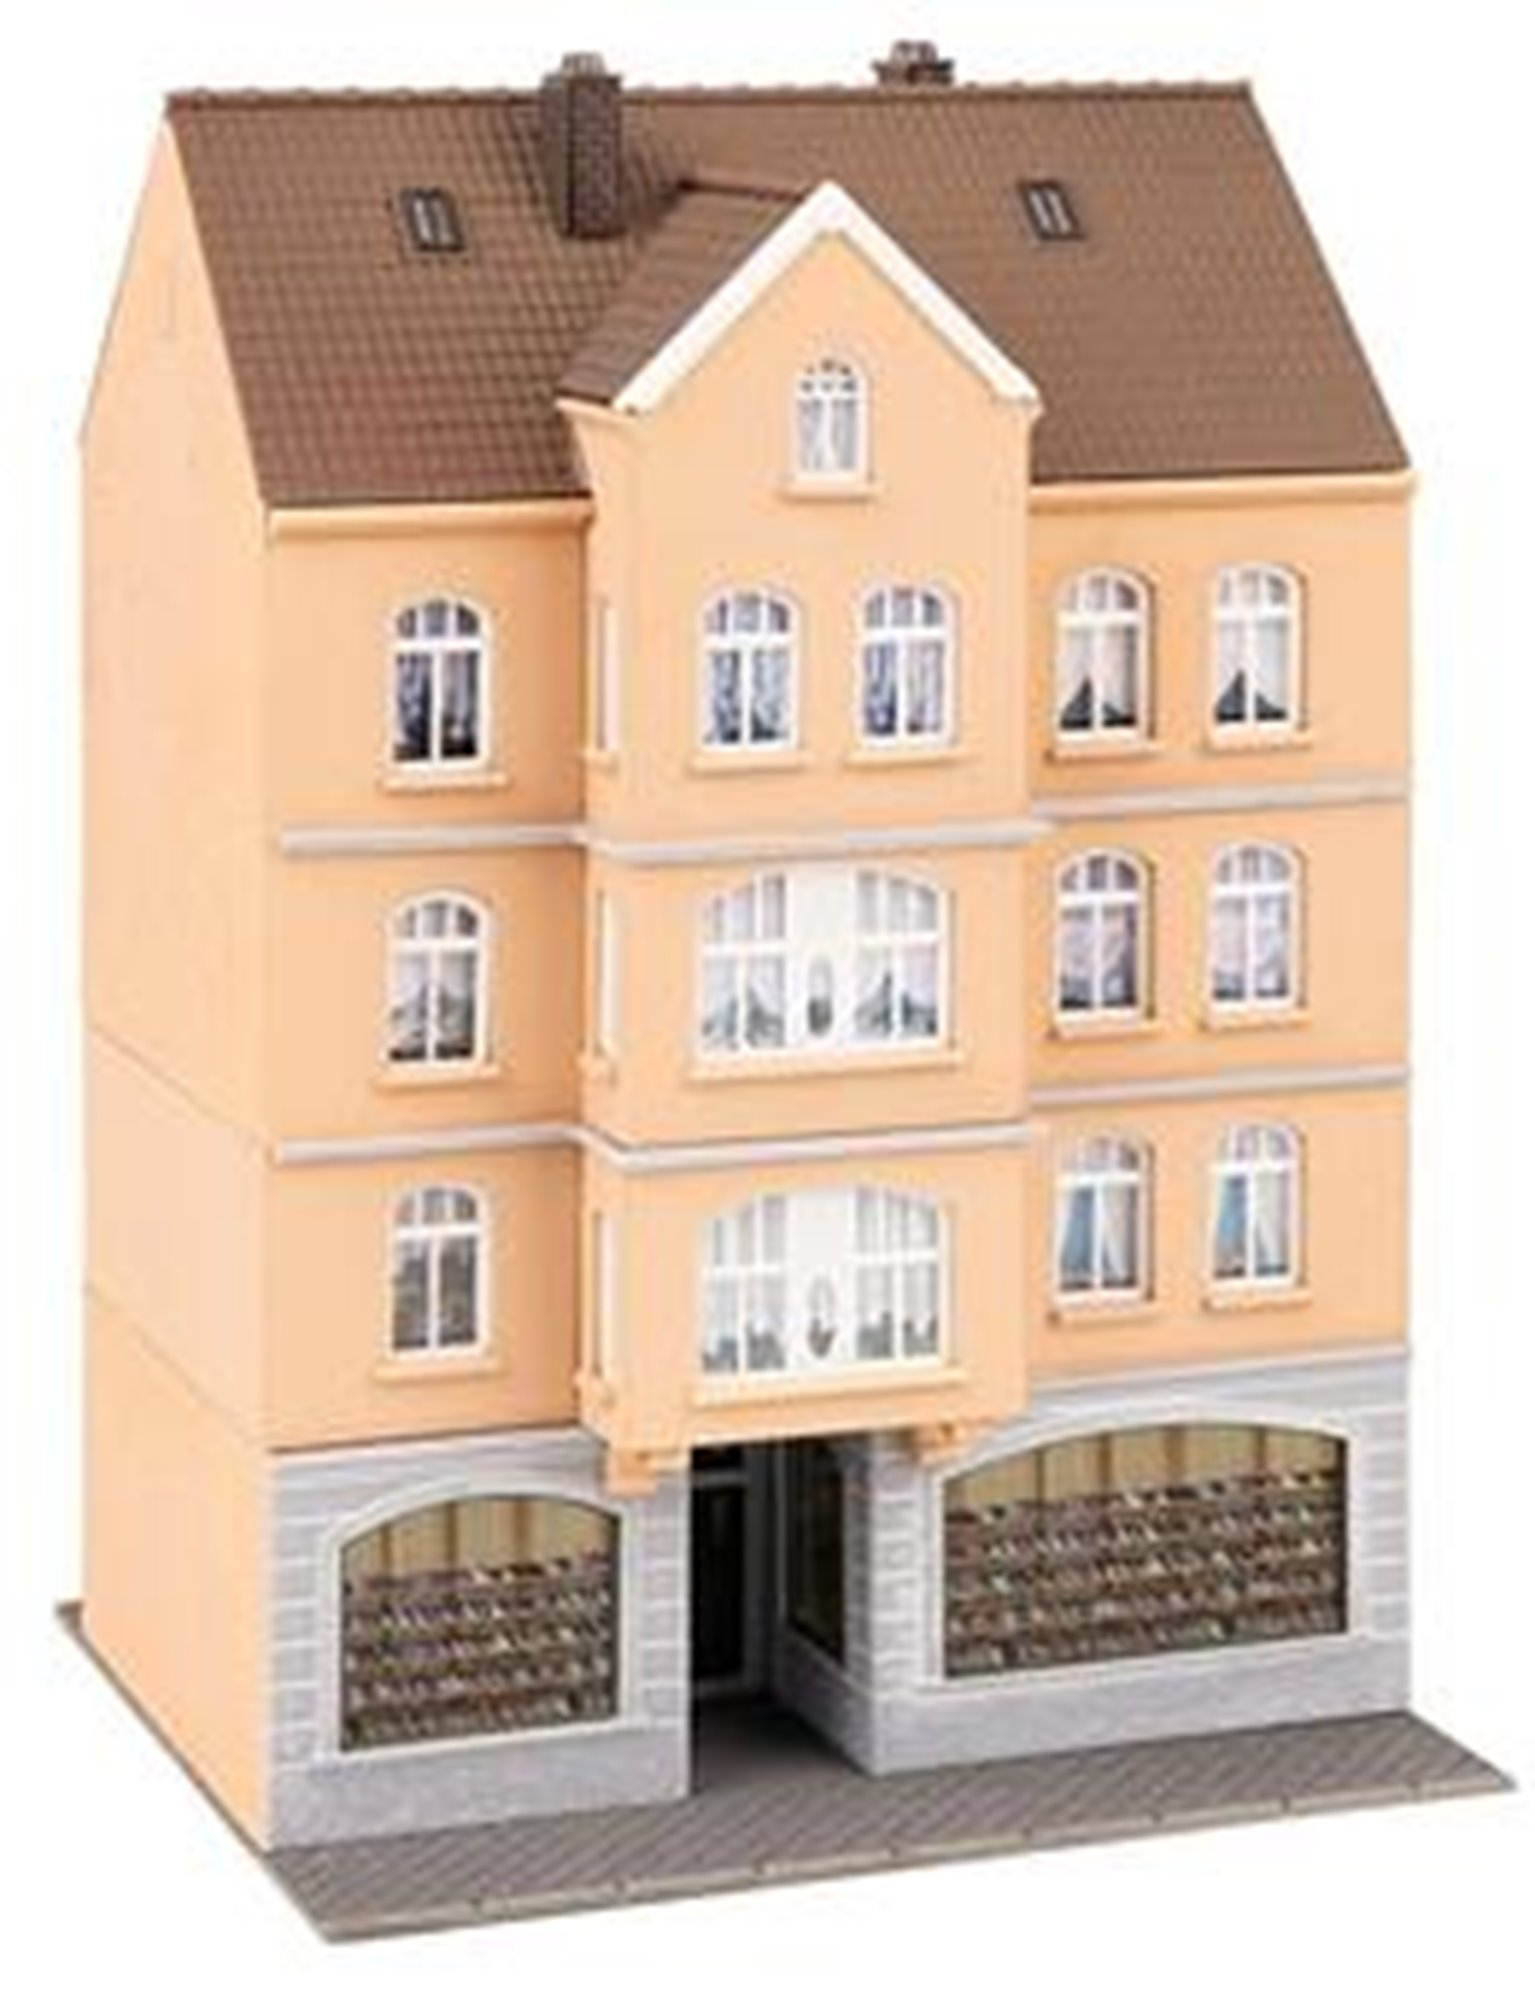 Townhouse with Shoe Shop Kit